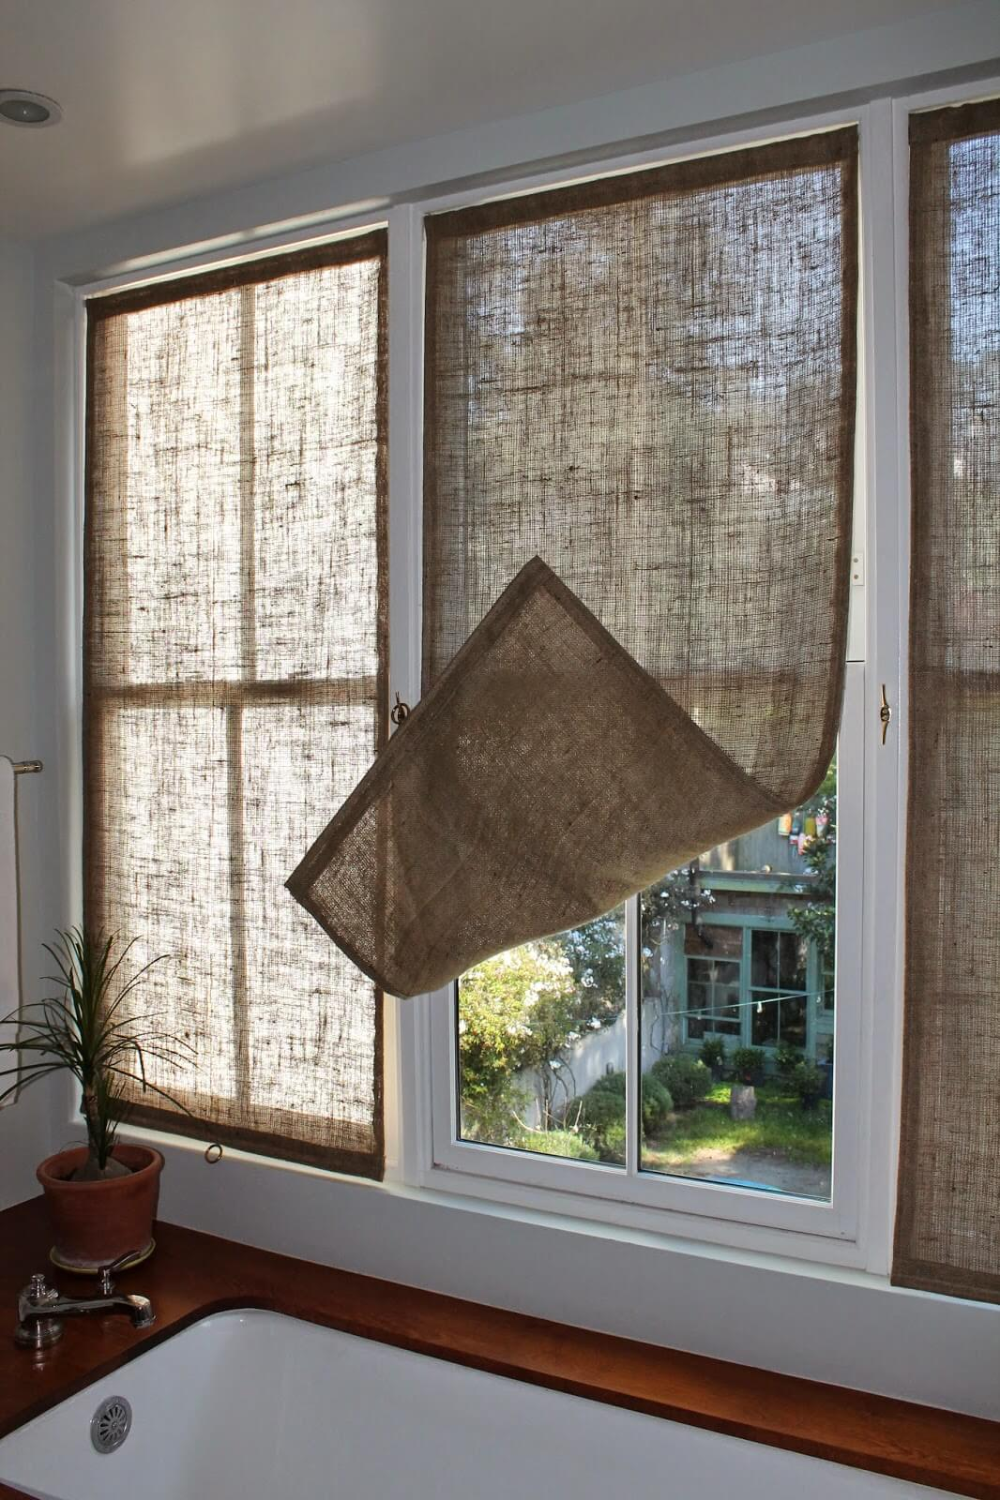 26 Farmhouse Window Treatment Ideas To Bring Old Fashioned Charm To Your Home Window Coverings Diy Bathroom Window Treatments Window Treatments Bedroom [ png ]